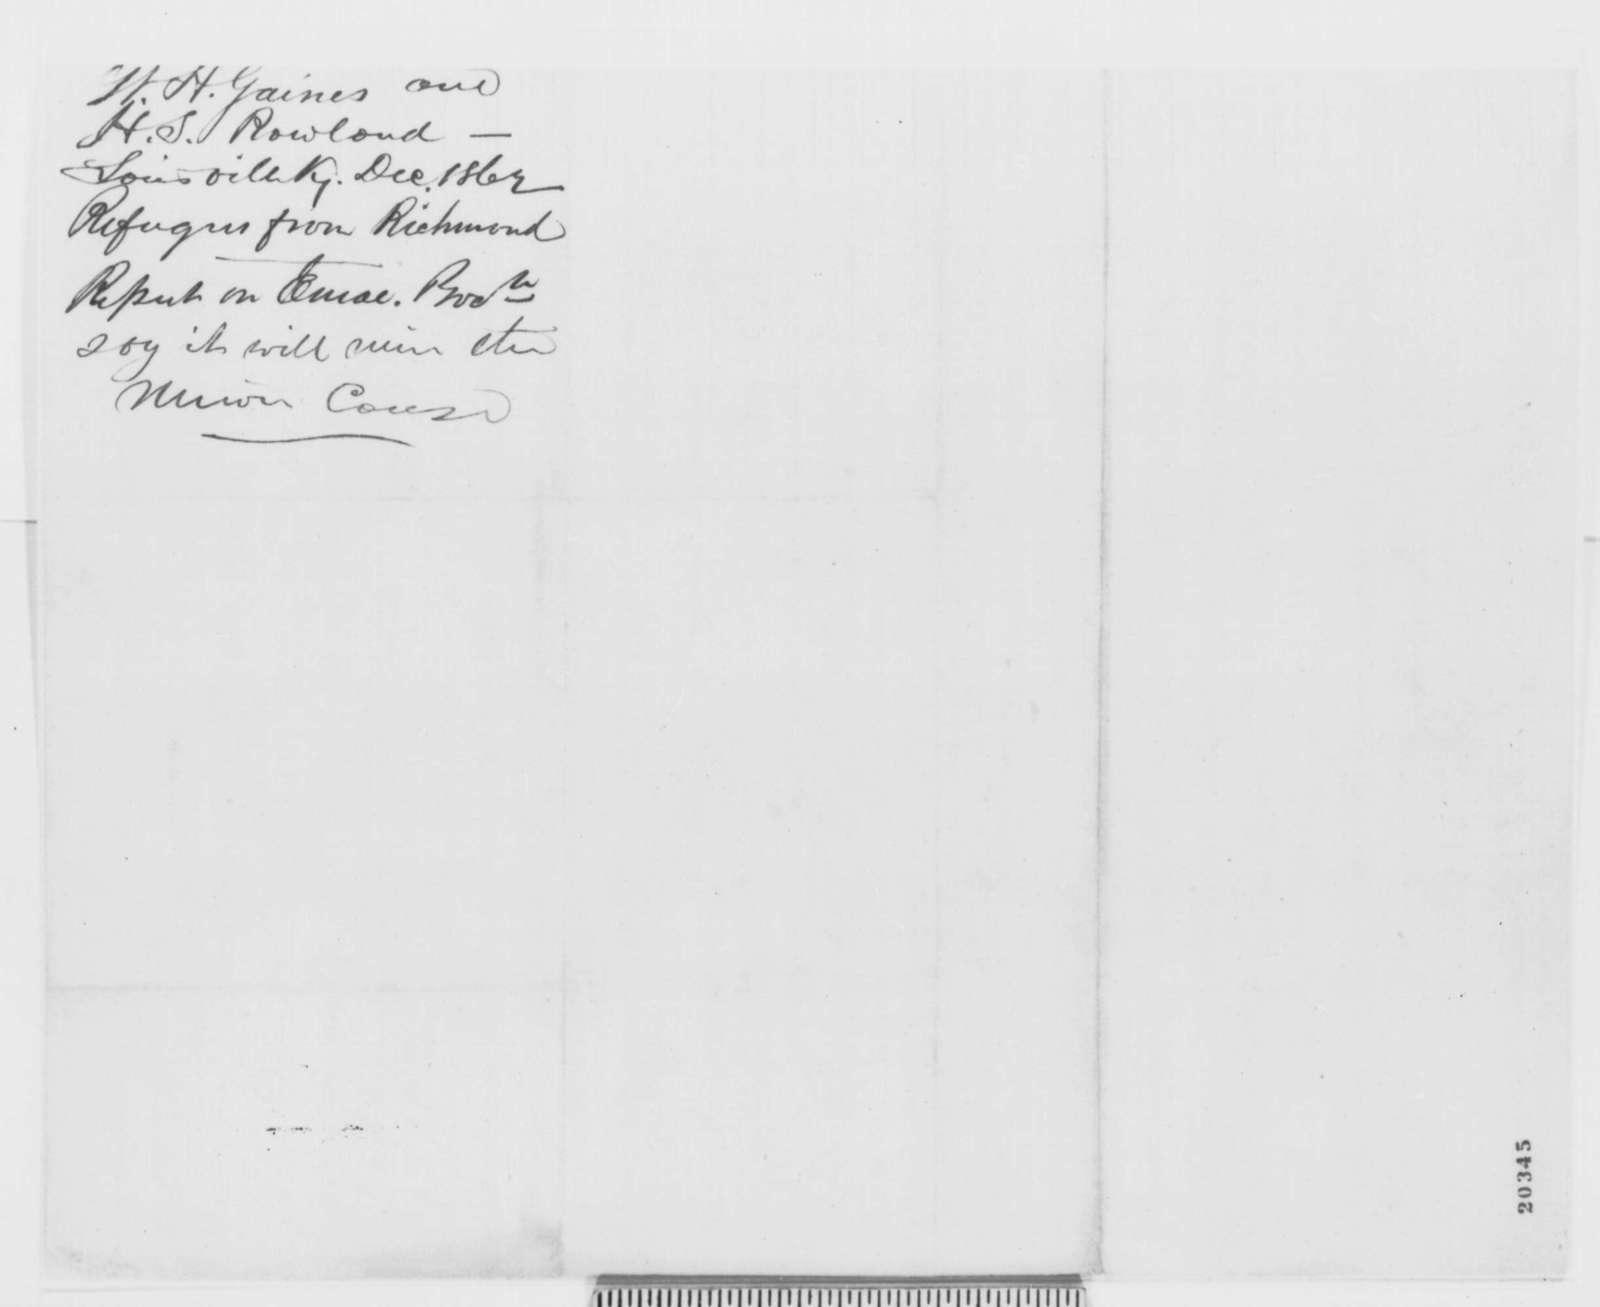 Walter H. Gaines and Henry S. Rowland to Abraham Lincoln, Sunday, December 21, 1862  (Emancipation Proclamation)